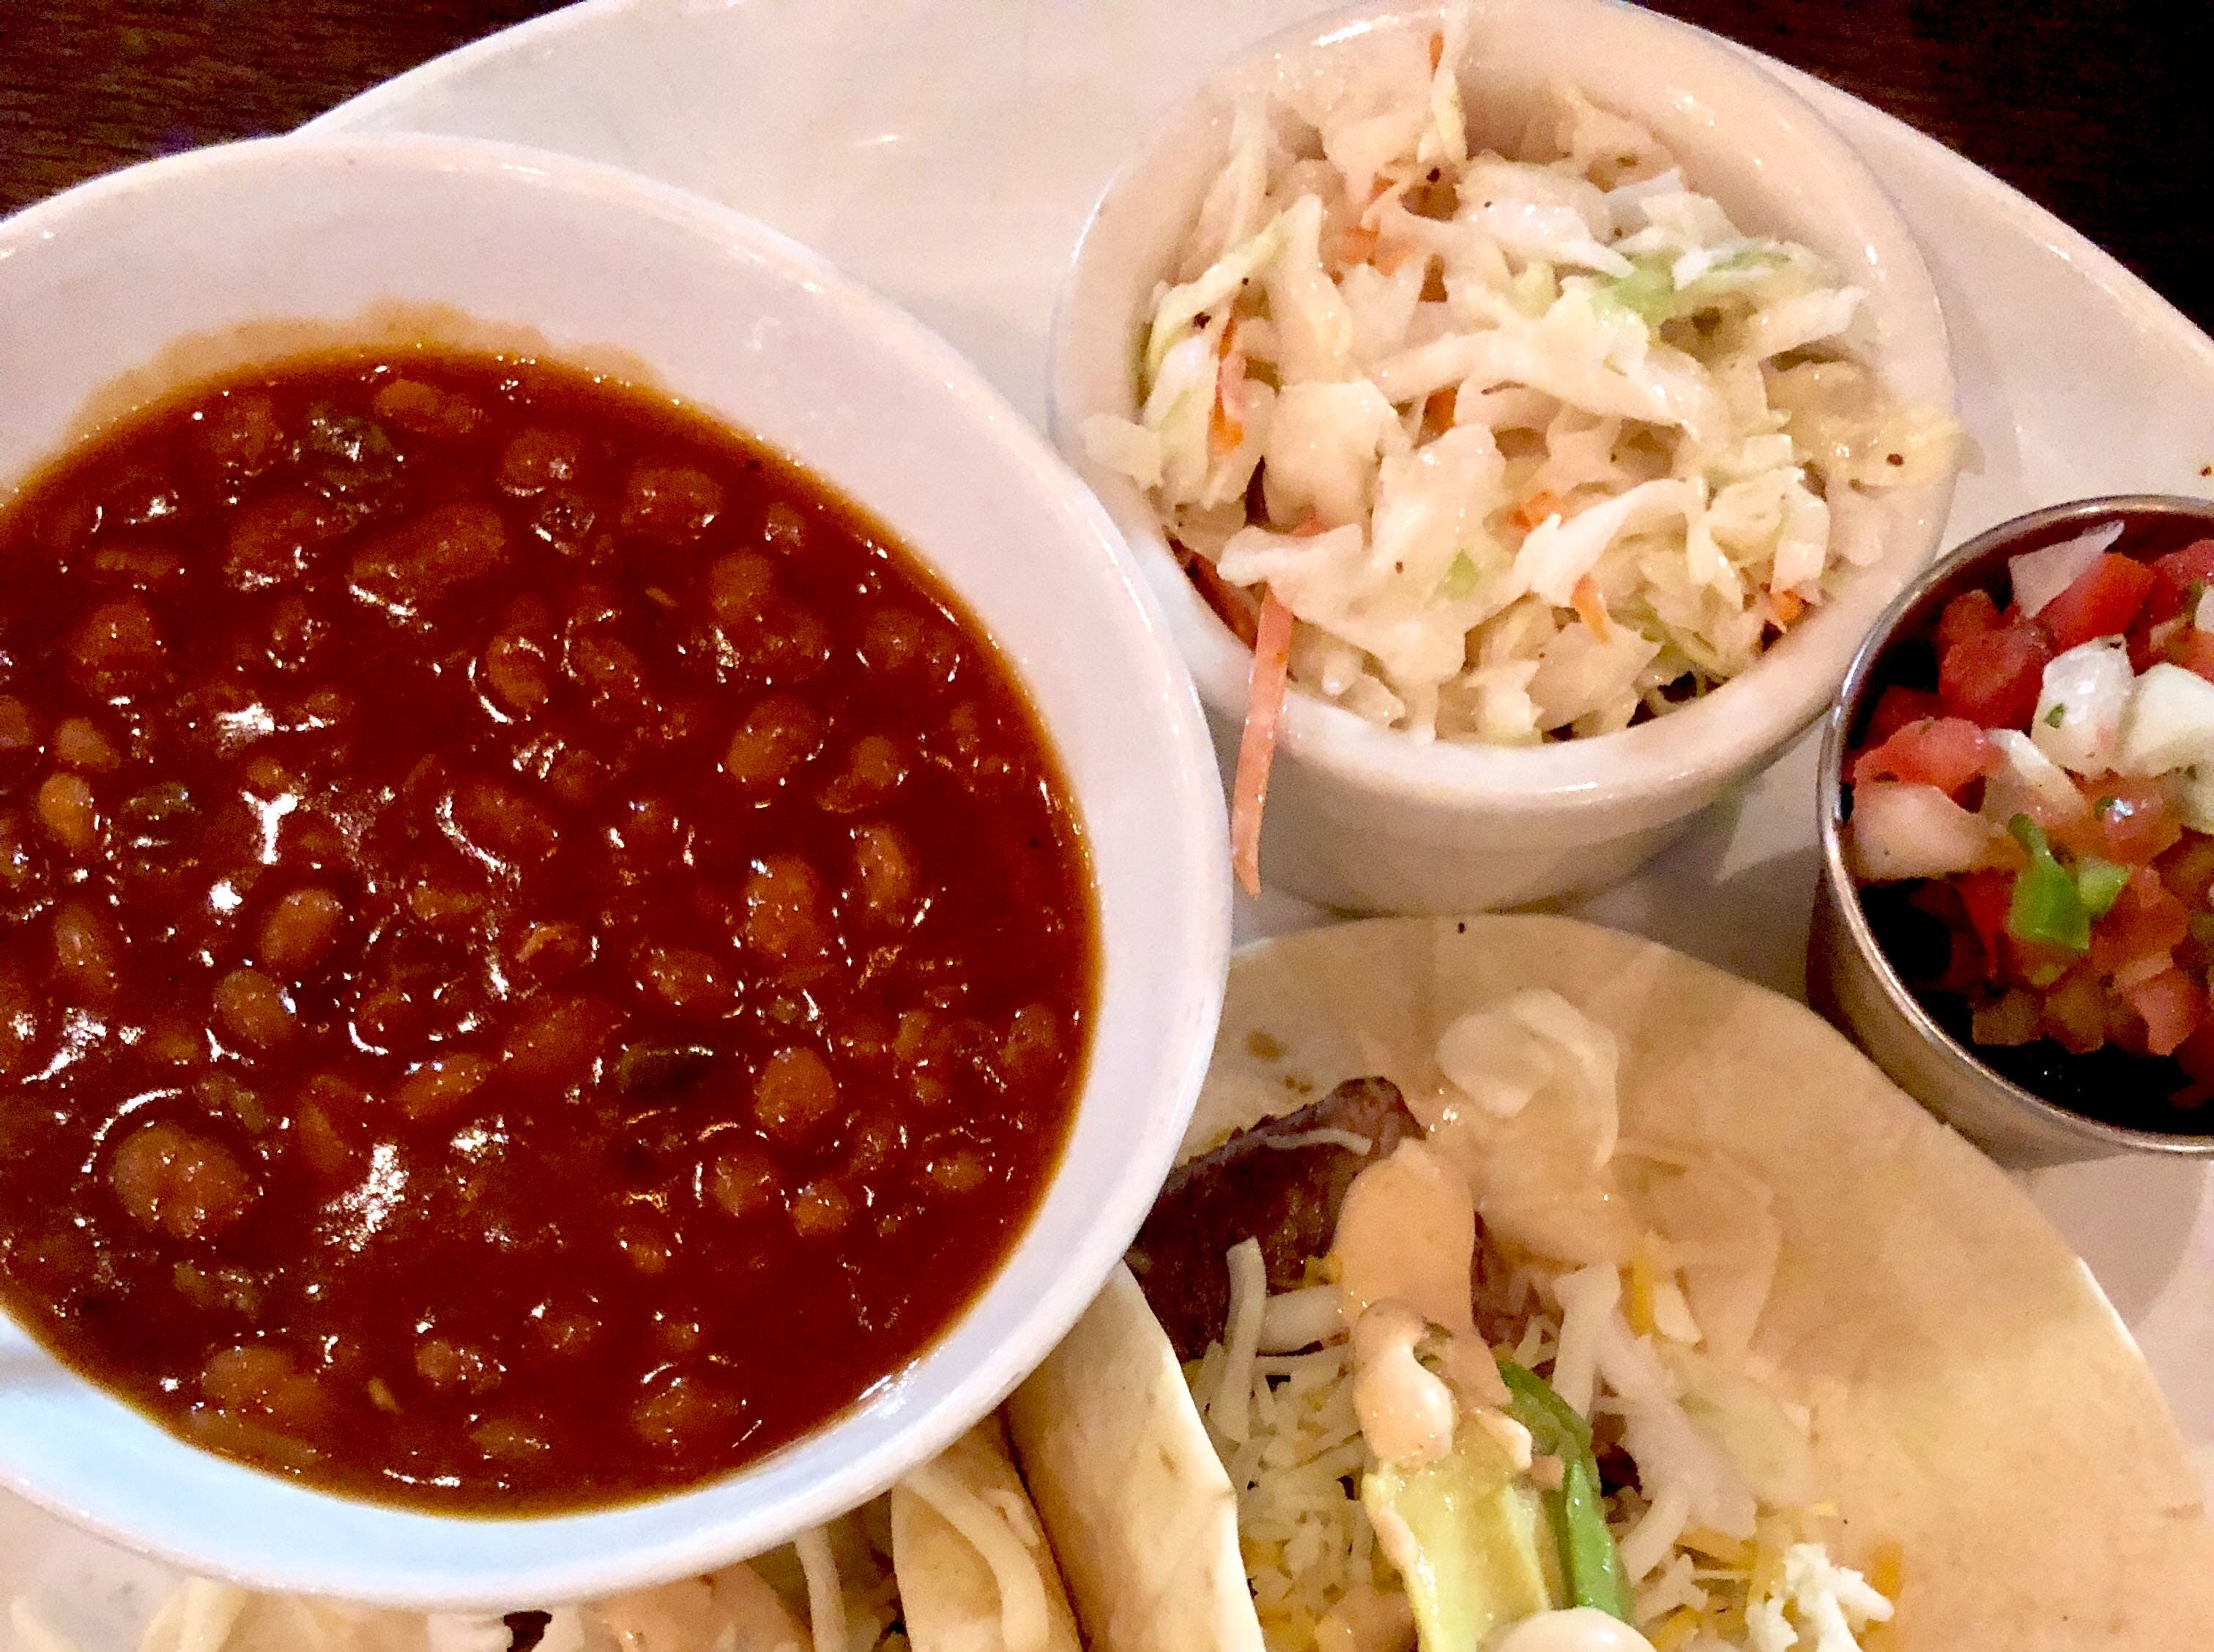 Steak tacos with a side of baked beans and coleslaw at Bone Hook Brewing Co. in North Naples.